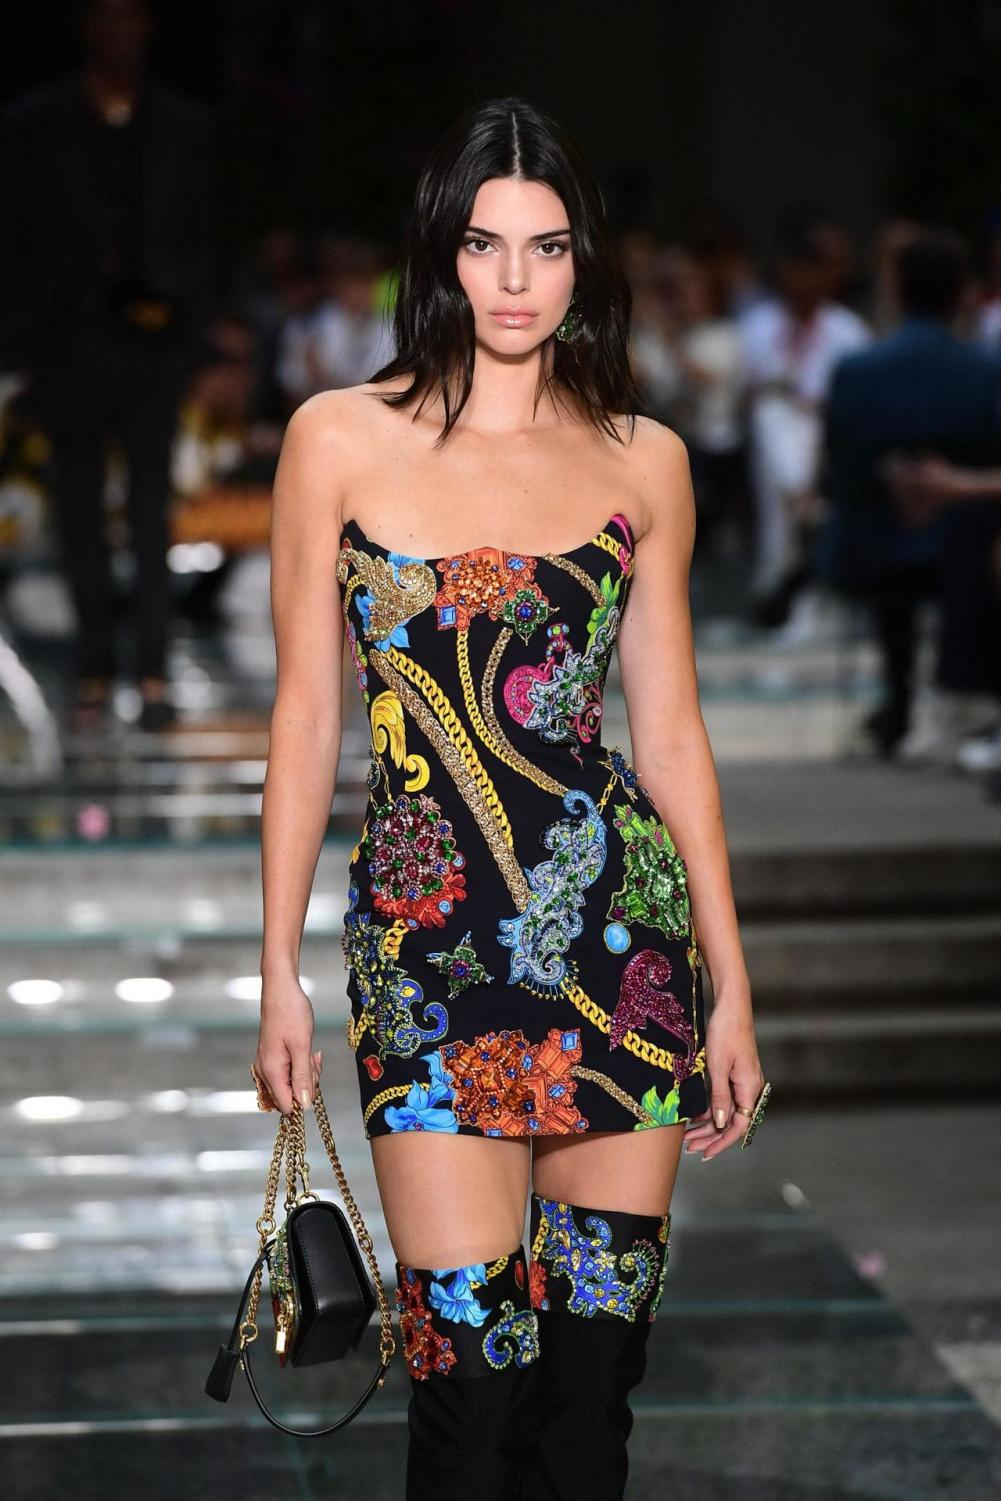 Models such as Kendall Jenner and Gigi Hadid walk in new York Fashion Week every year; however, this year Jenner chose to walk in a limited amount of shows.